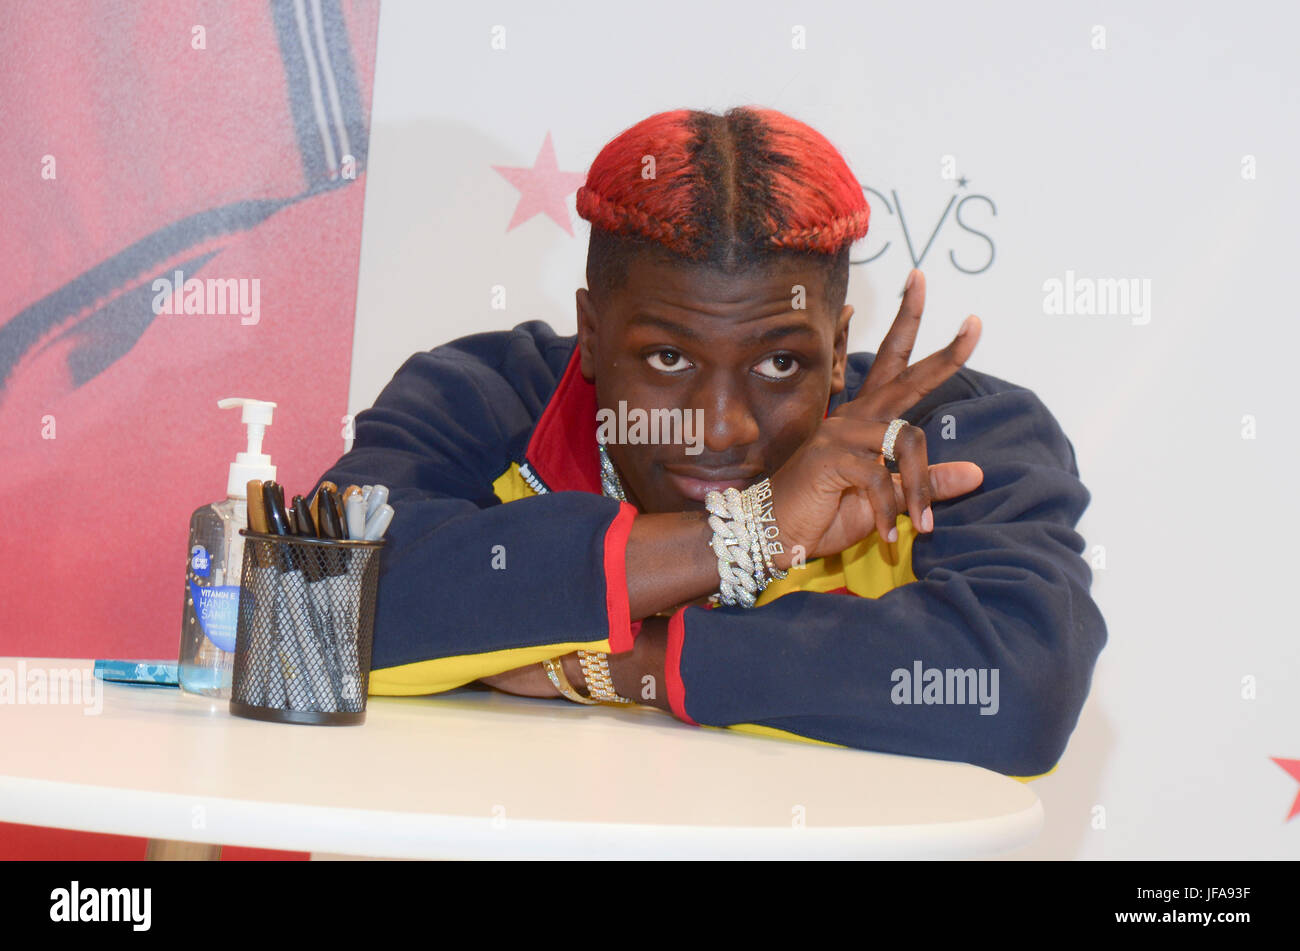 New York Ny Usa 29th June 2017 Lil Yachty Attends The Meet And